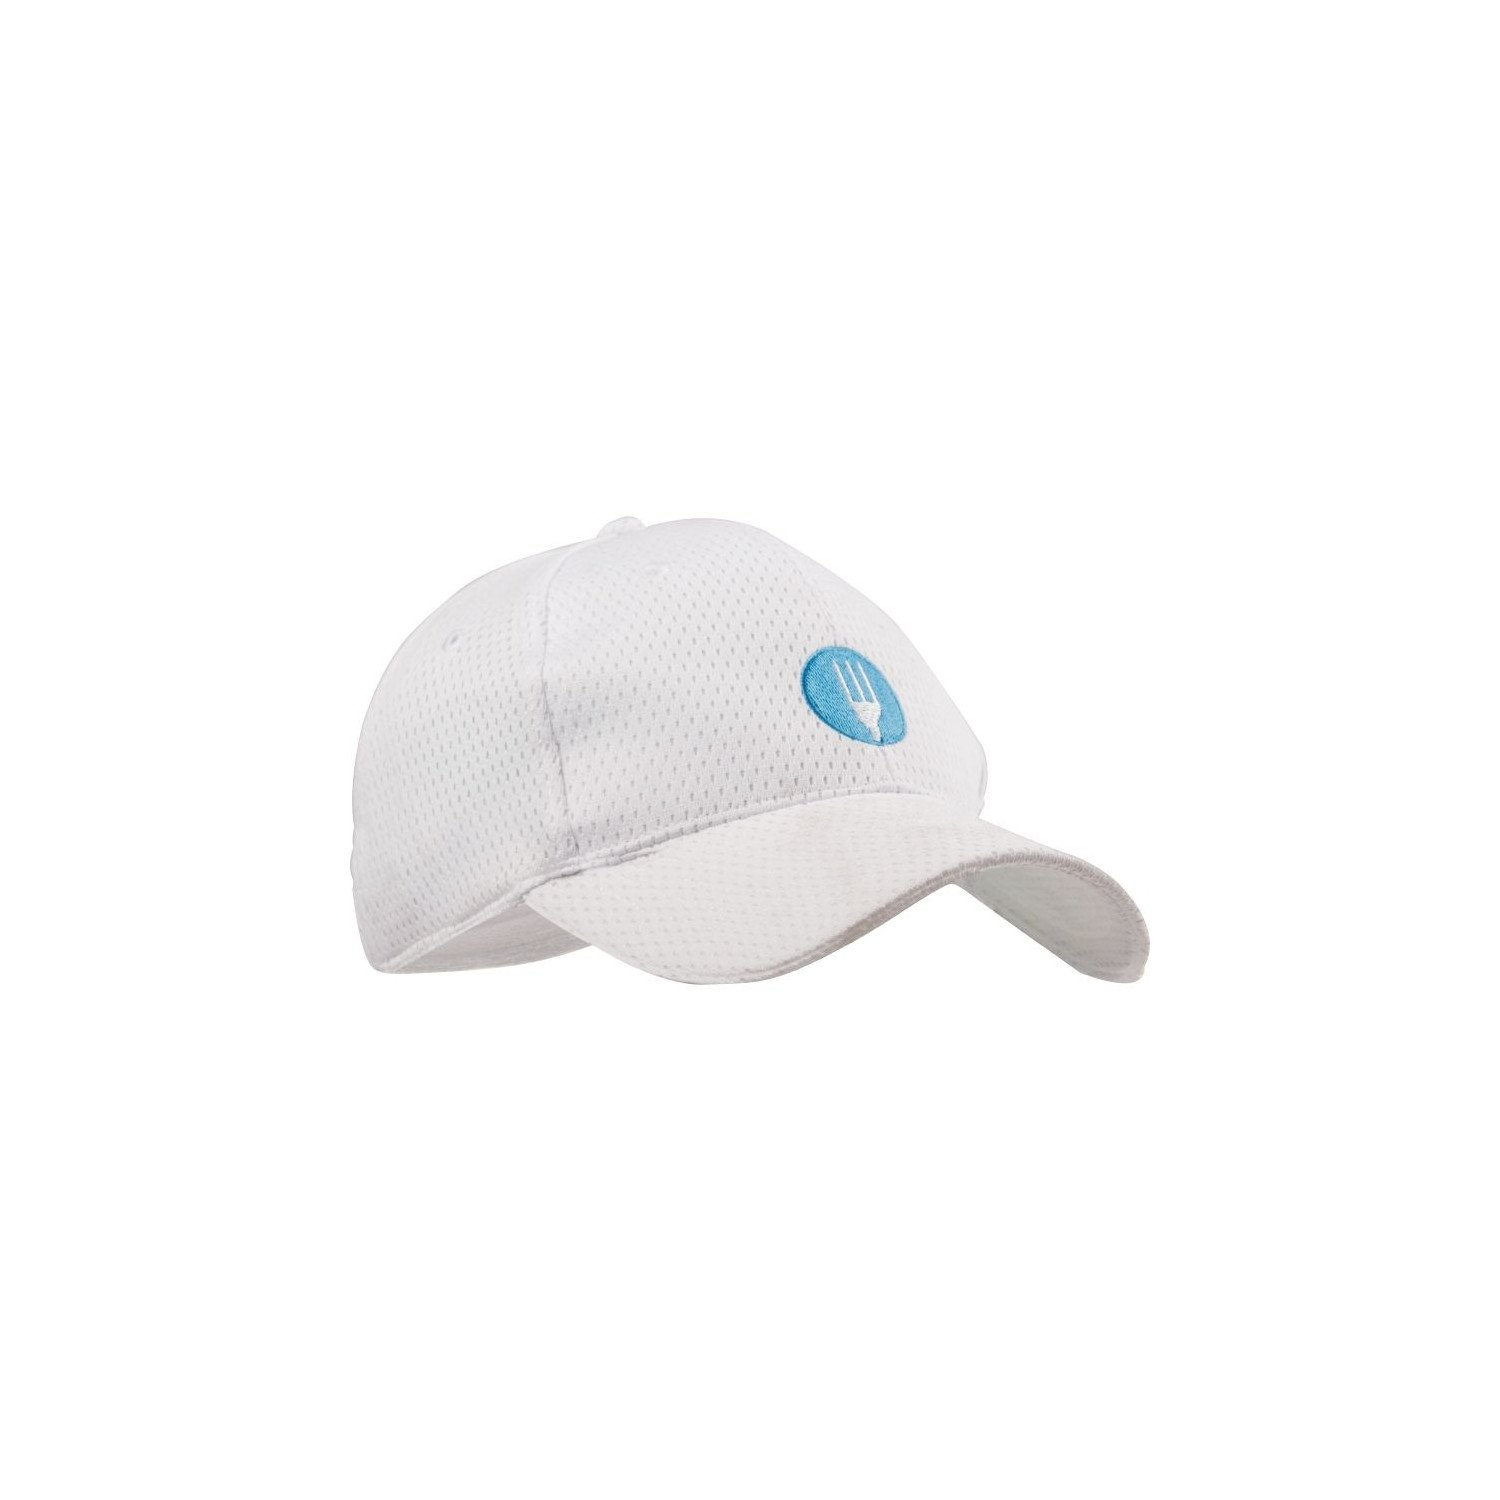 Casquette Cool Vent baseball Chef Works blanche CHEF WORKS Nisbets Vêtements